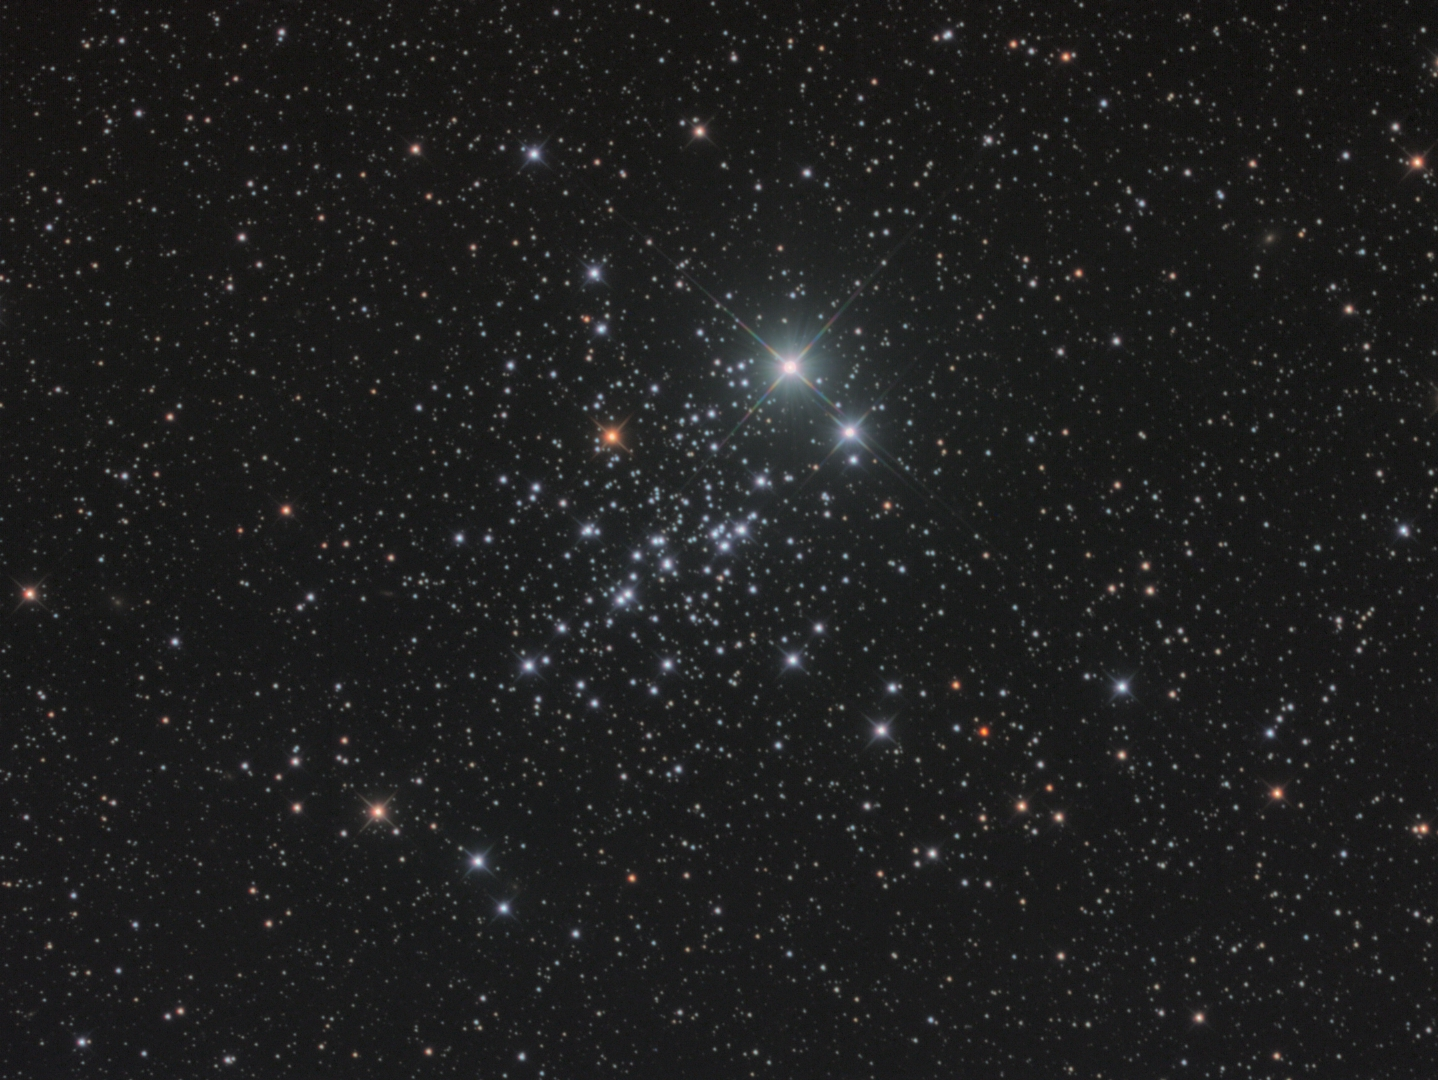 NGC 457 Star Cluster